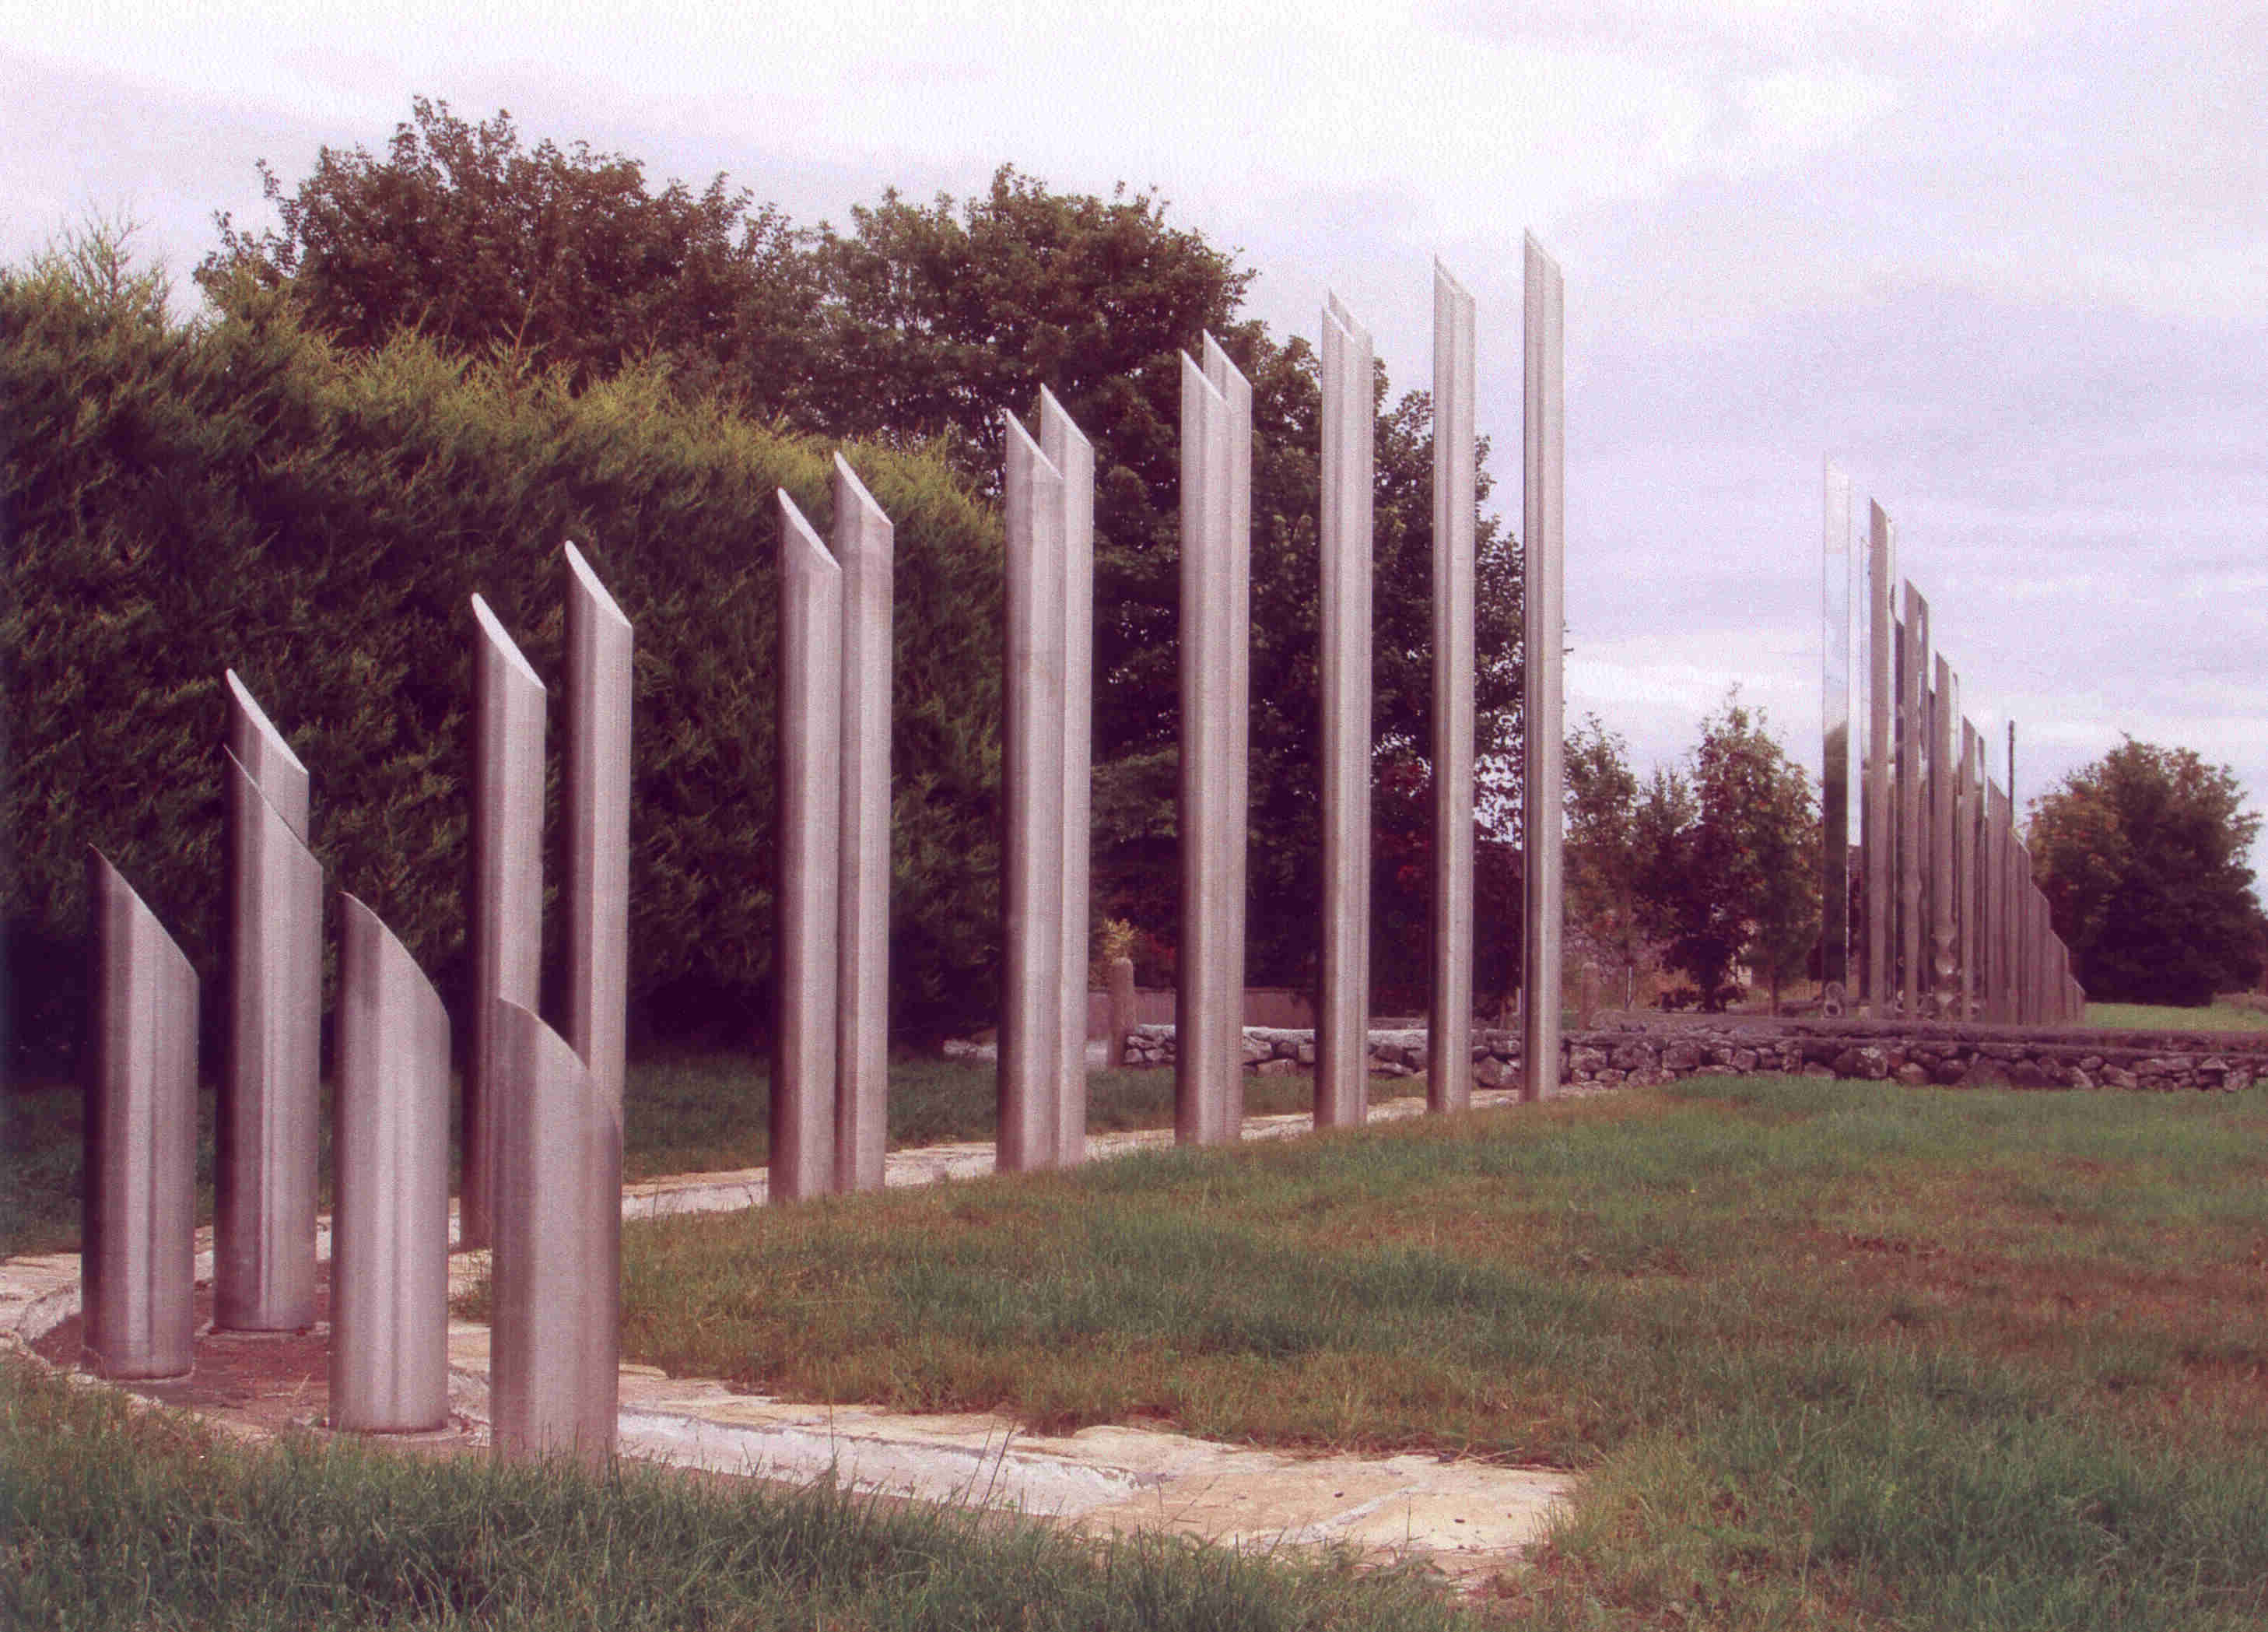 Stainless Steel Sculpture - Galway By Pass=